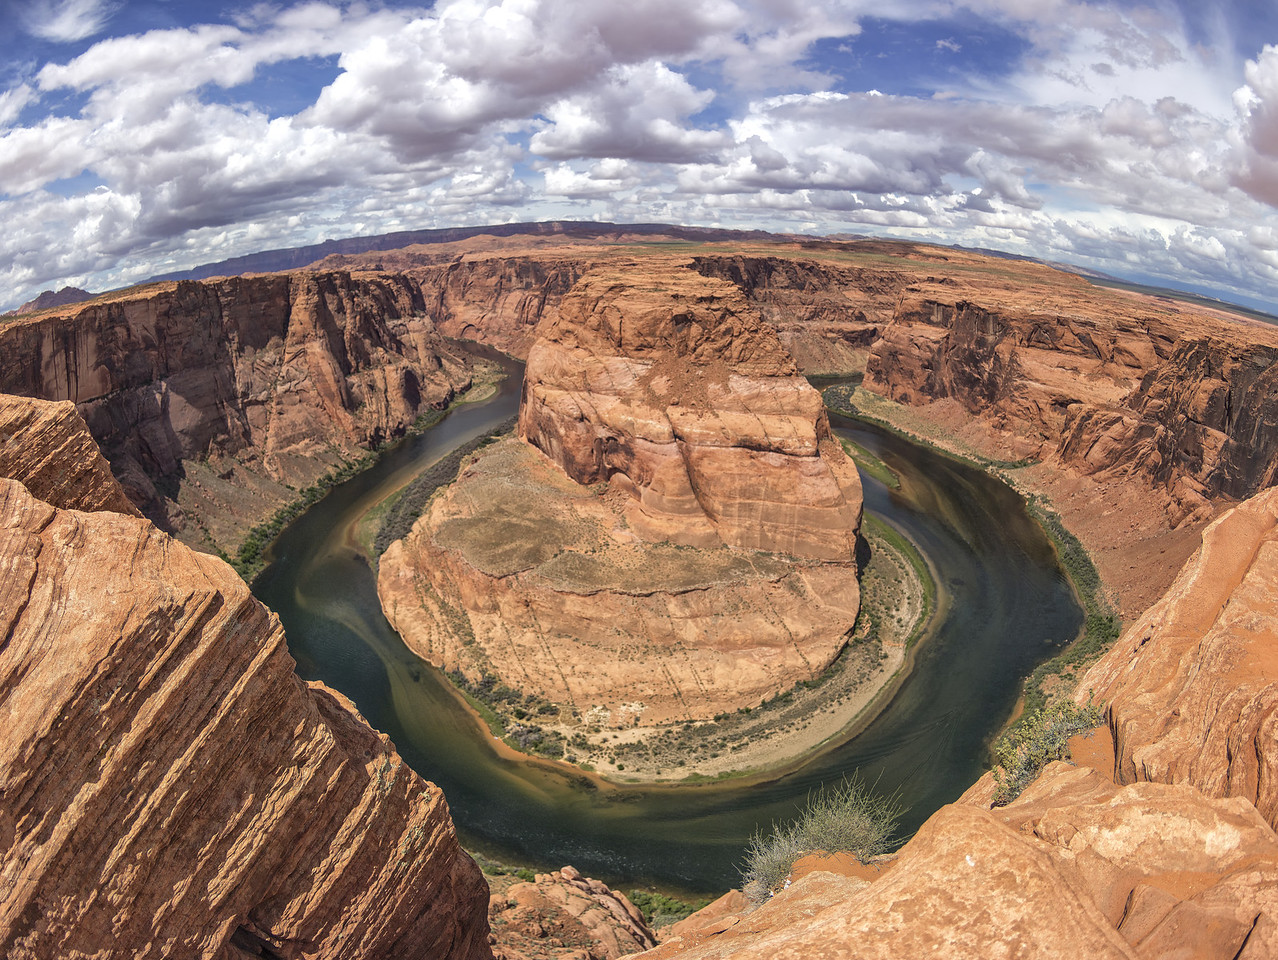 Horse shoe Bend, Colorado River, AZ